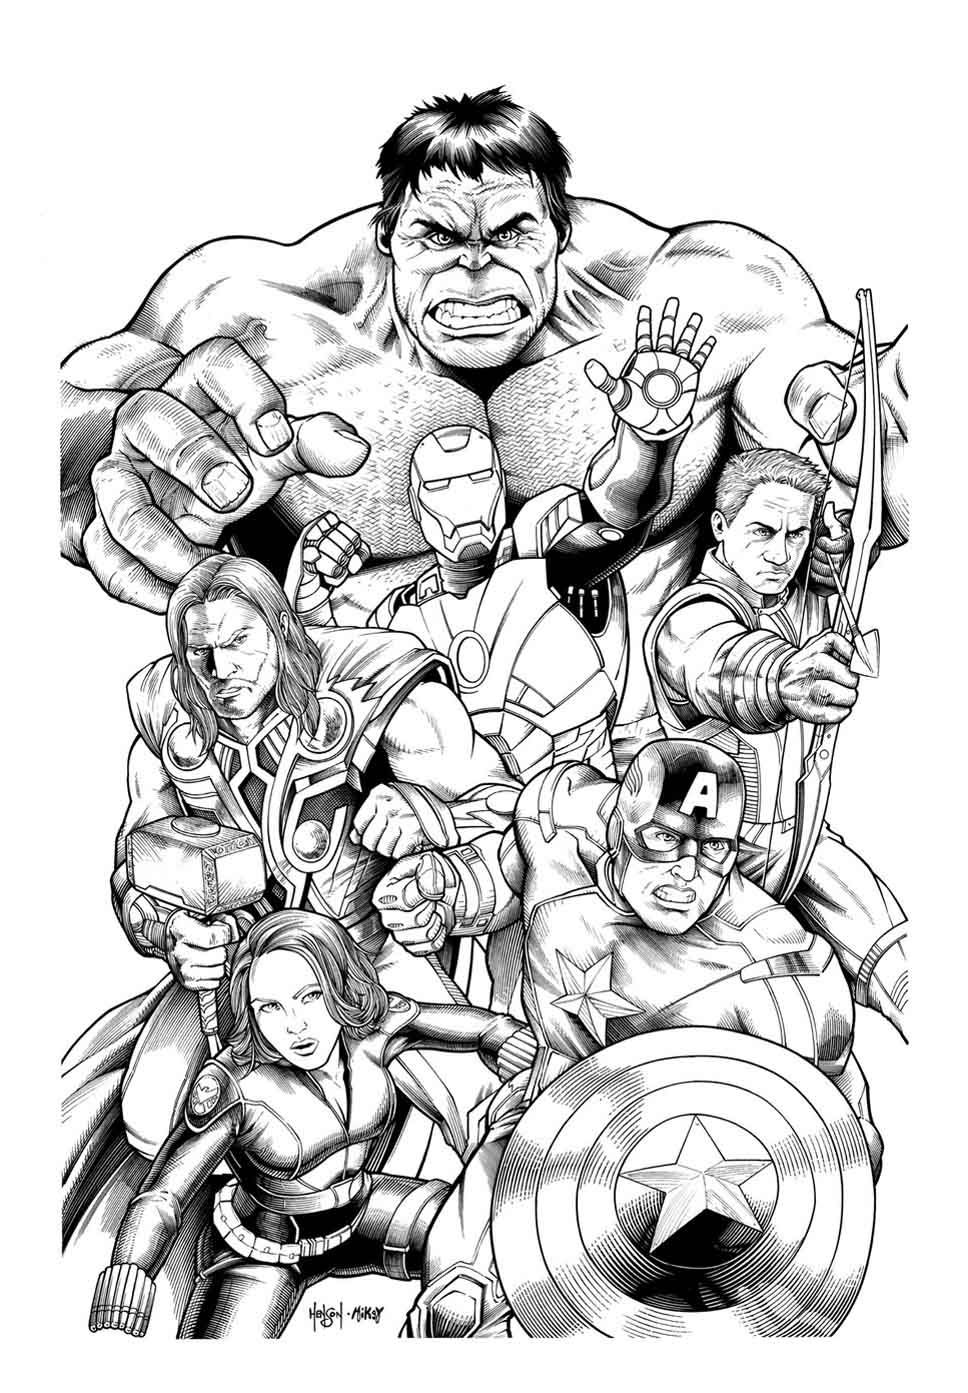 The Powerful Hulk And The Other Heroes Hulk Overlooking By His Size And Strength The Other Avengers Coloring Pages Avengers Coloring Superhero Coloring Pages